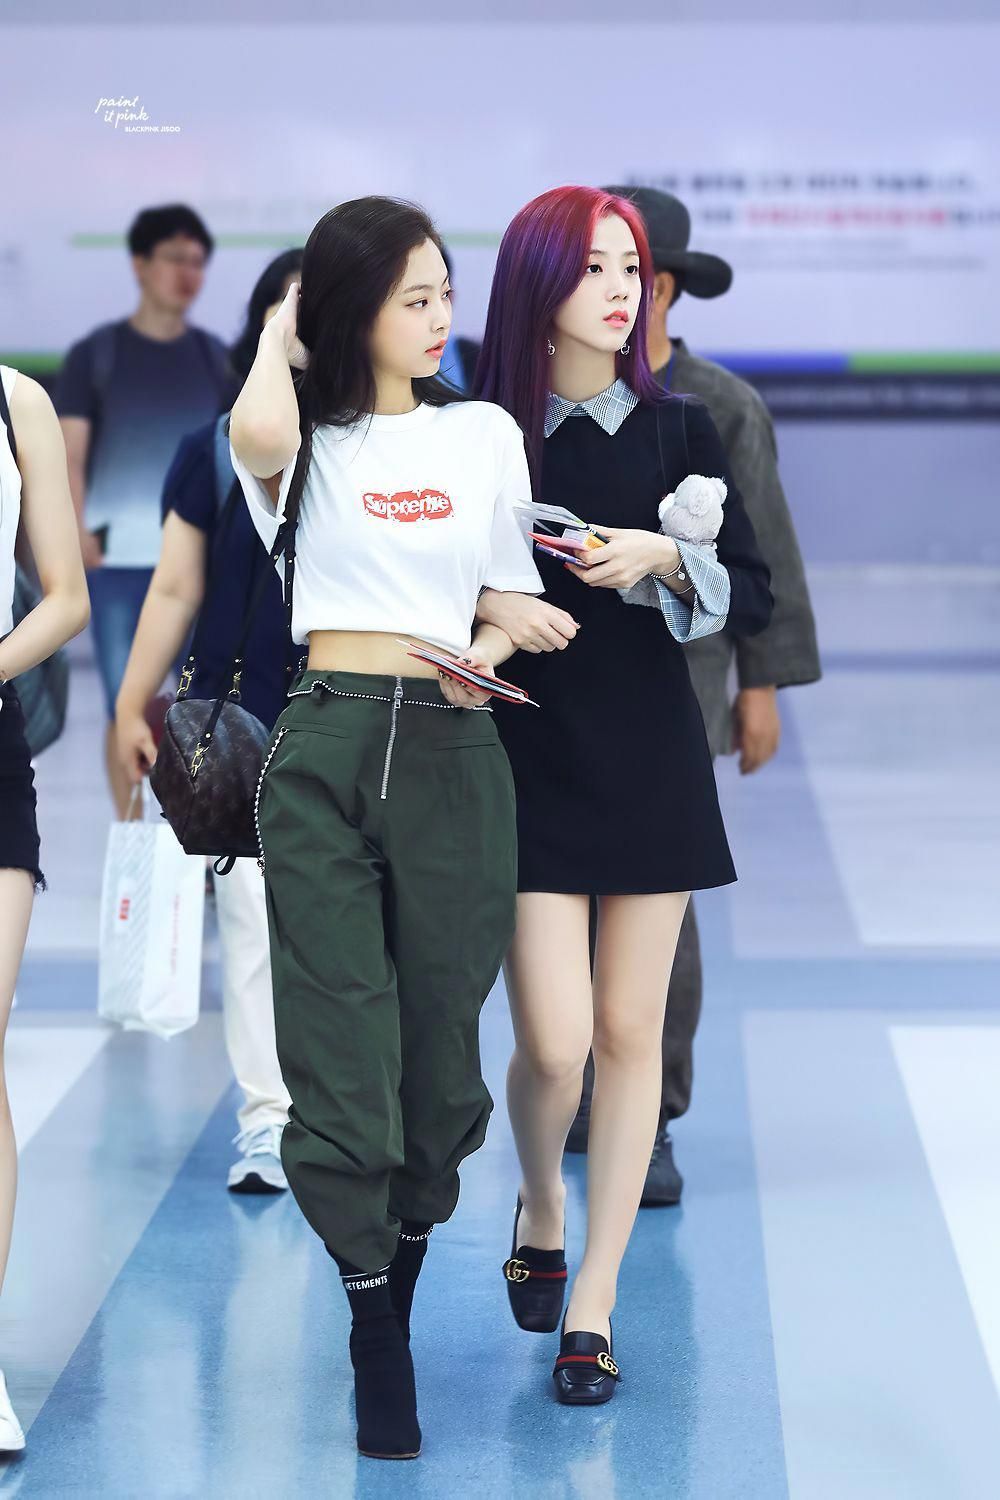 Jennie / Jisoo  Jennie's style is amazing, I love the way her and Lisa dresses #koreanfashion #kpopfashion